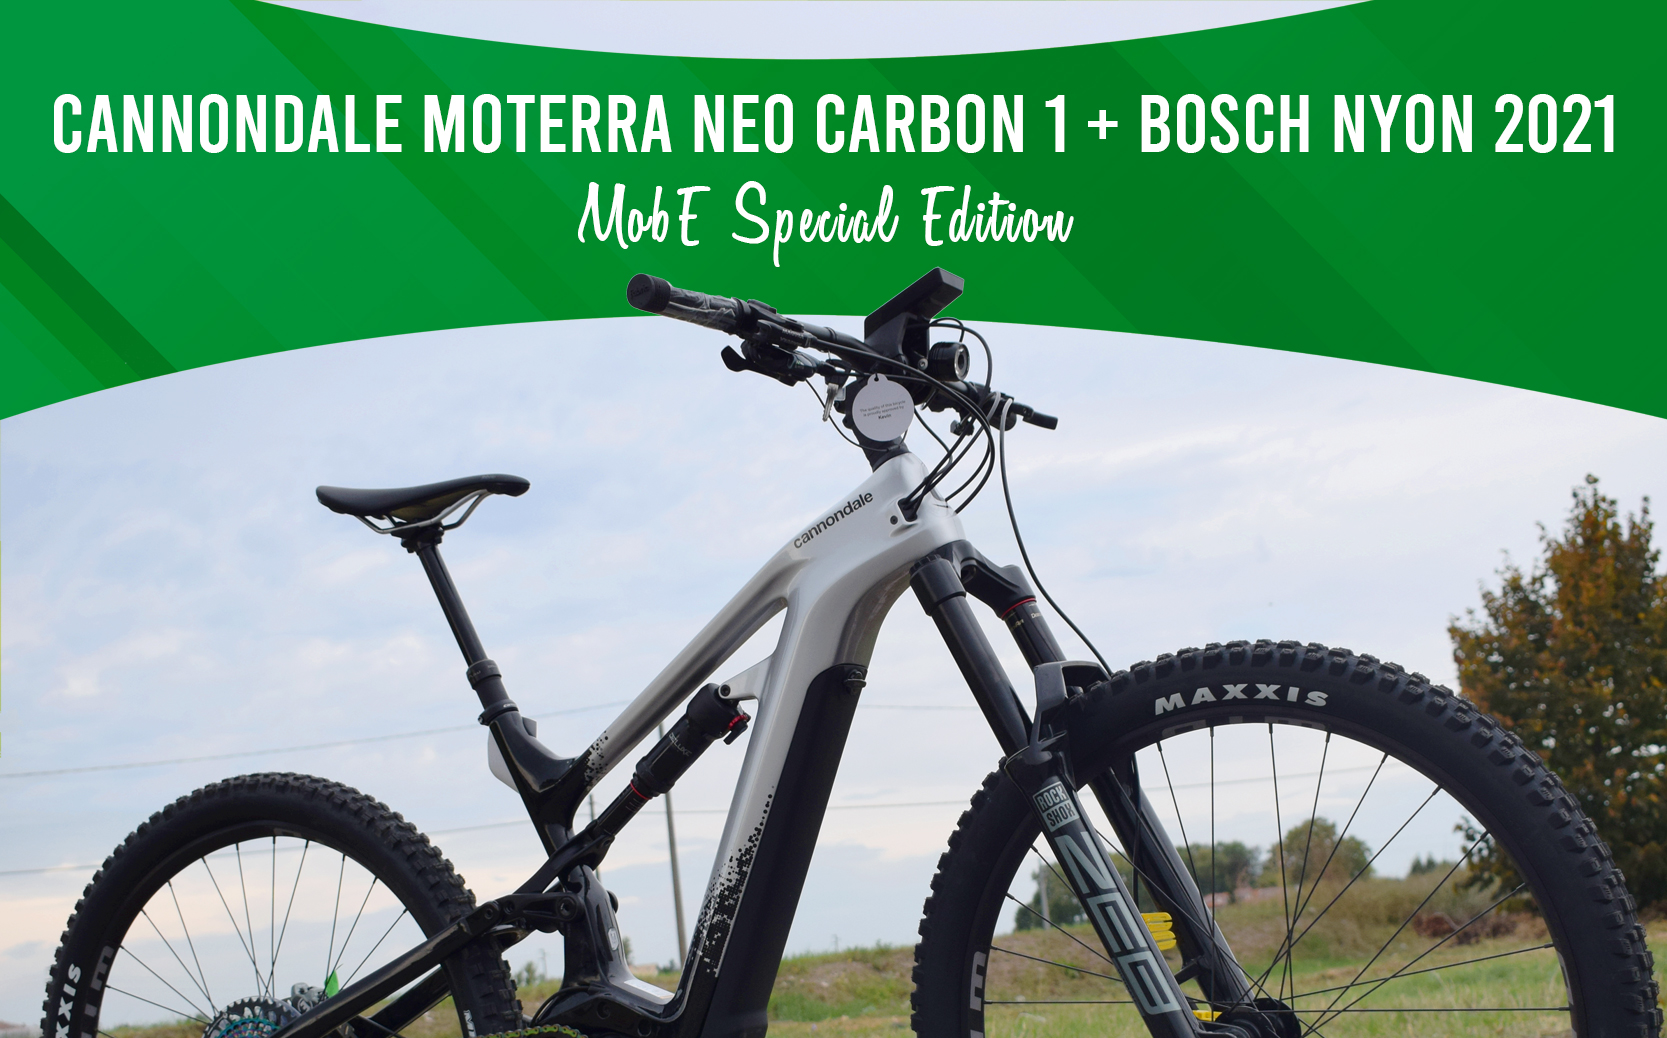 cannondale moterra neo carbon 1 mobe special edition bosch nyon display 2021 touchscreen mobilita elettrica